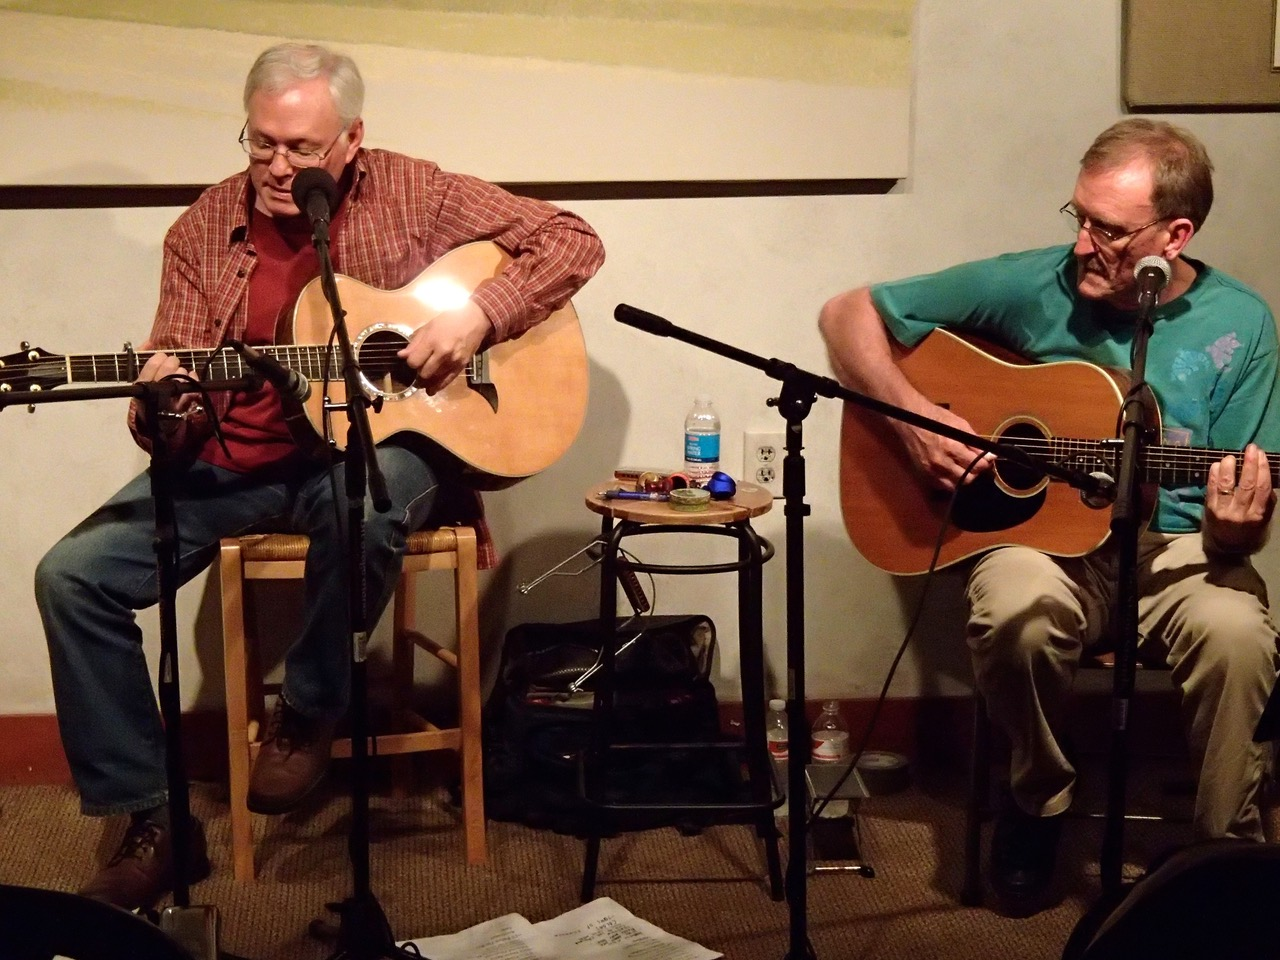 John Heasley & Jerry Schroeder - Songbag Concert - May 13, 2018, 4:00pm